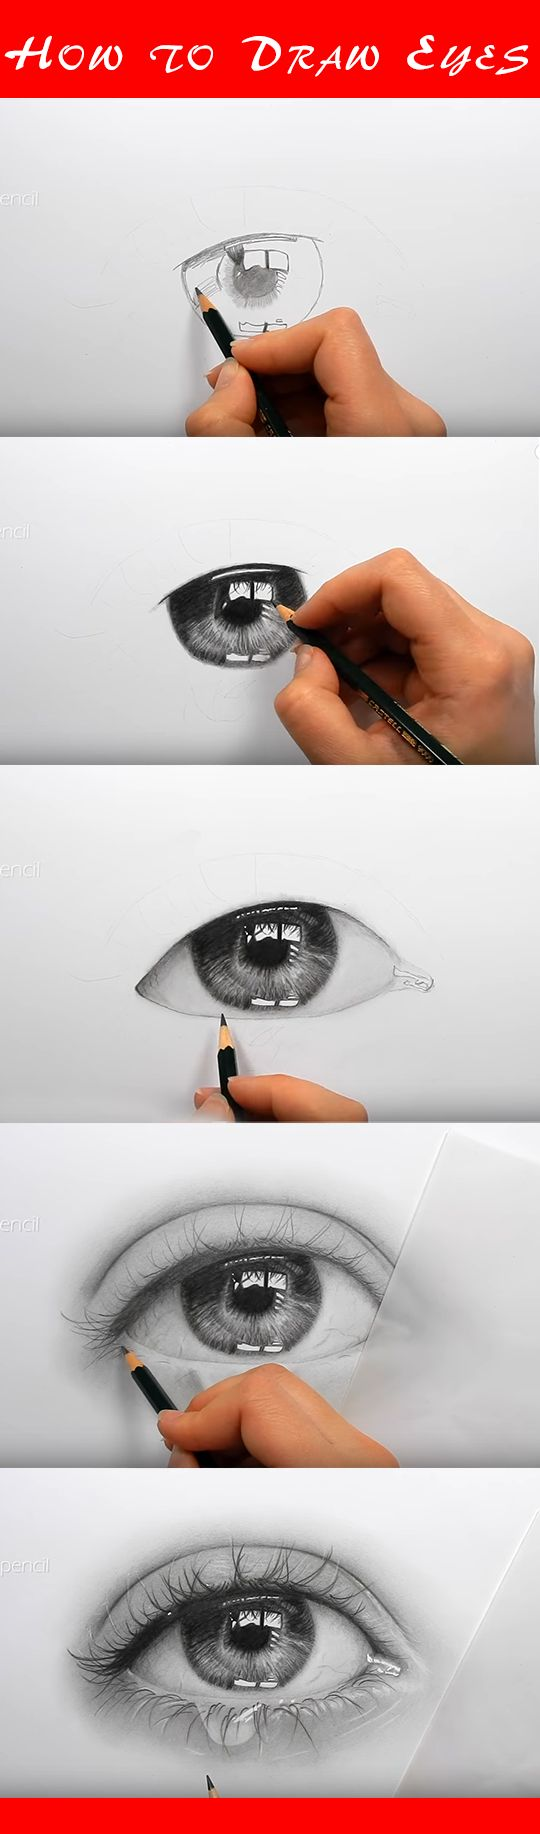 With the room in mind in the reflection. Draw realistic eyes with this step-by-ste